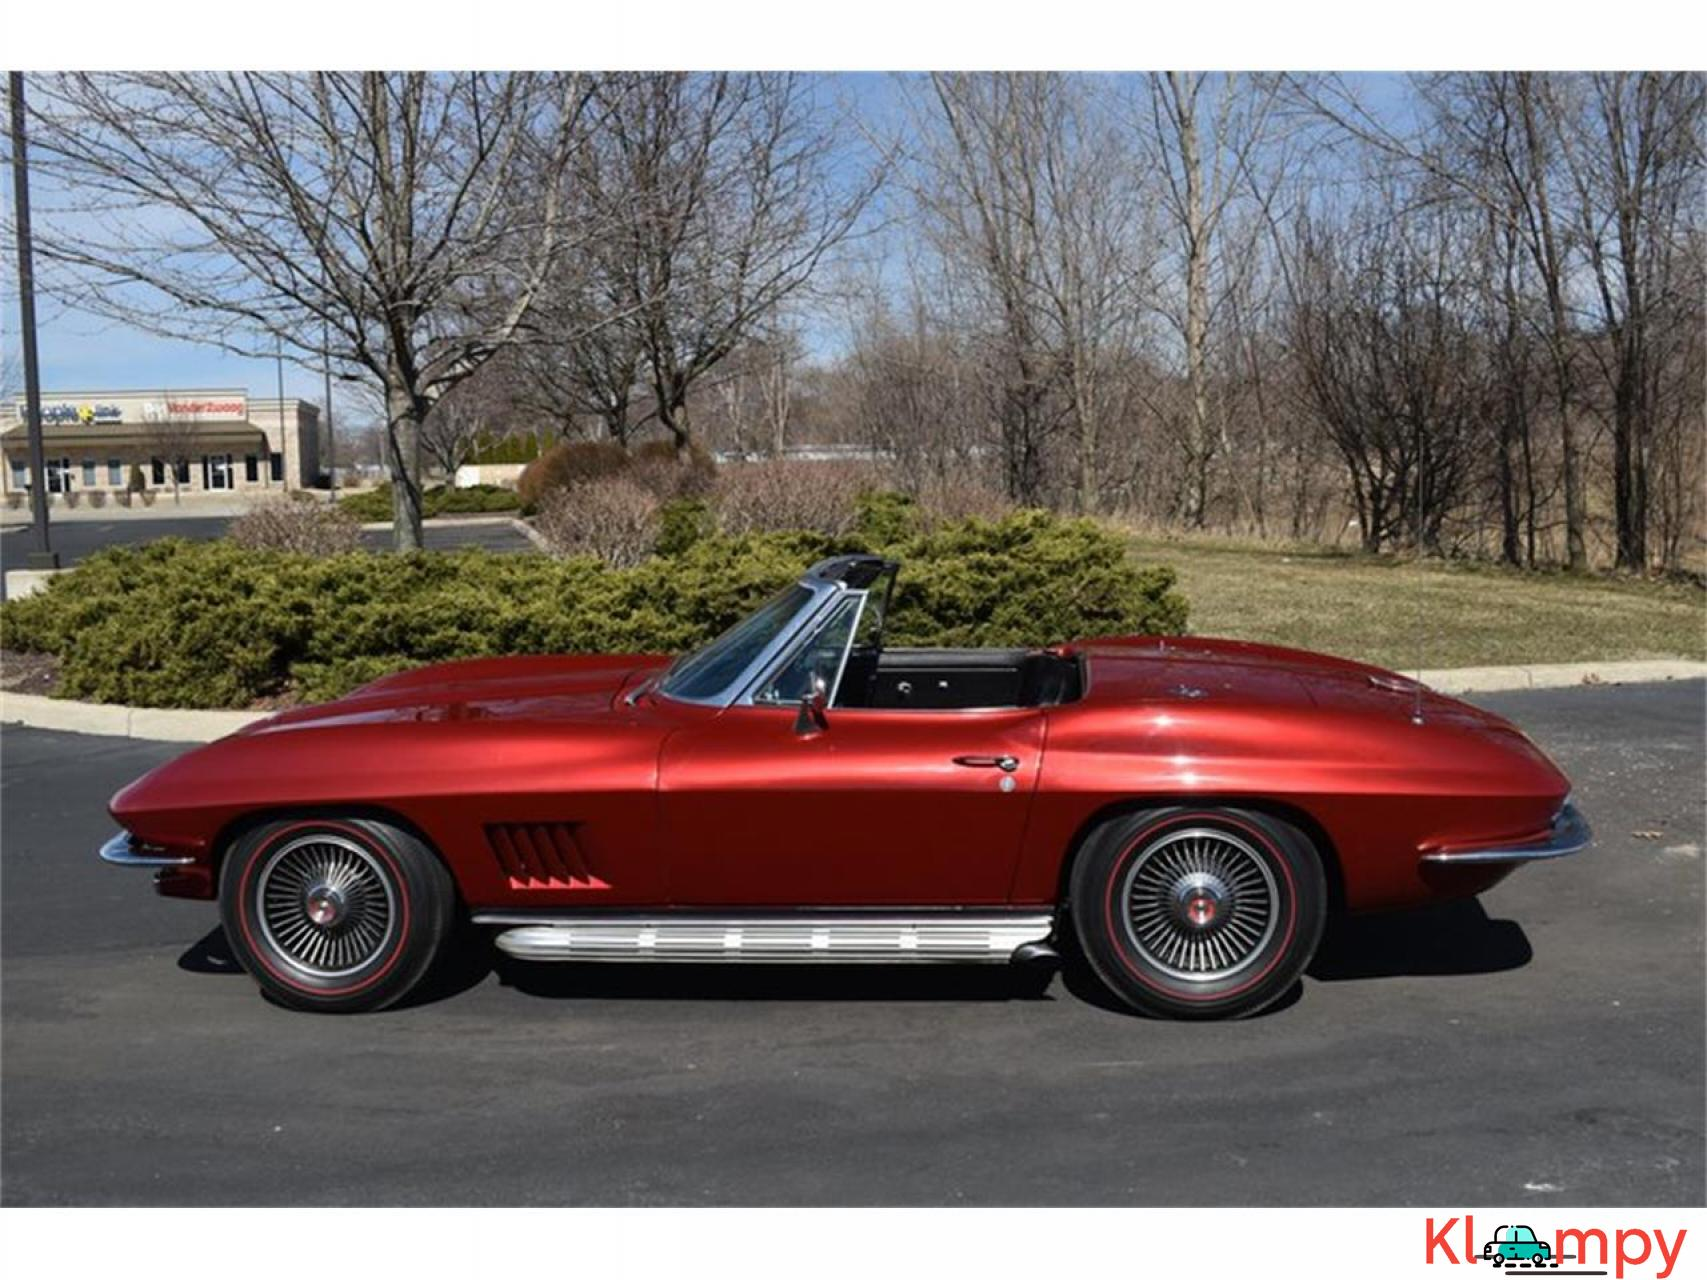 1967 Chevrolet Corvette 350HP 327 Cu In V8 - 3/20